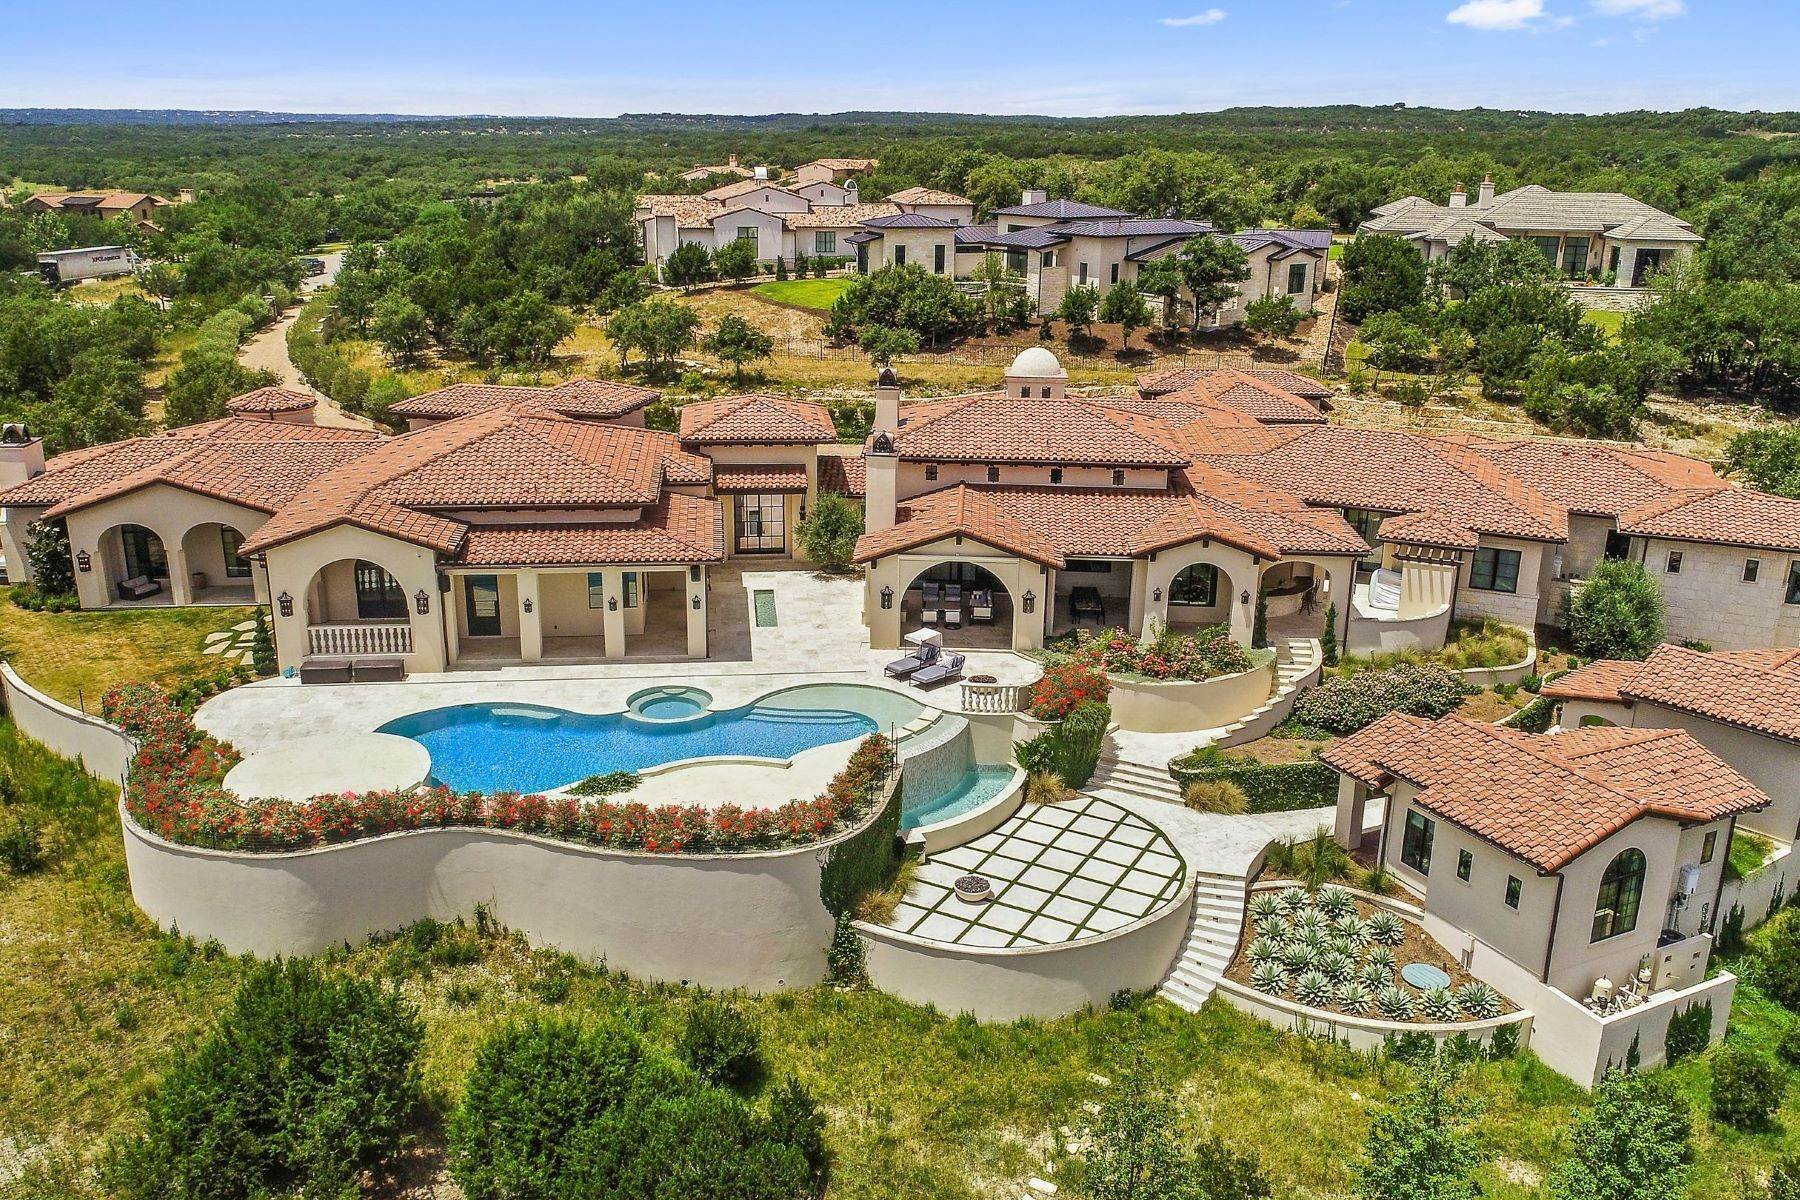 Single Family Homes for Sale at Casa Krause Austin, Texas 78738 United States